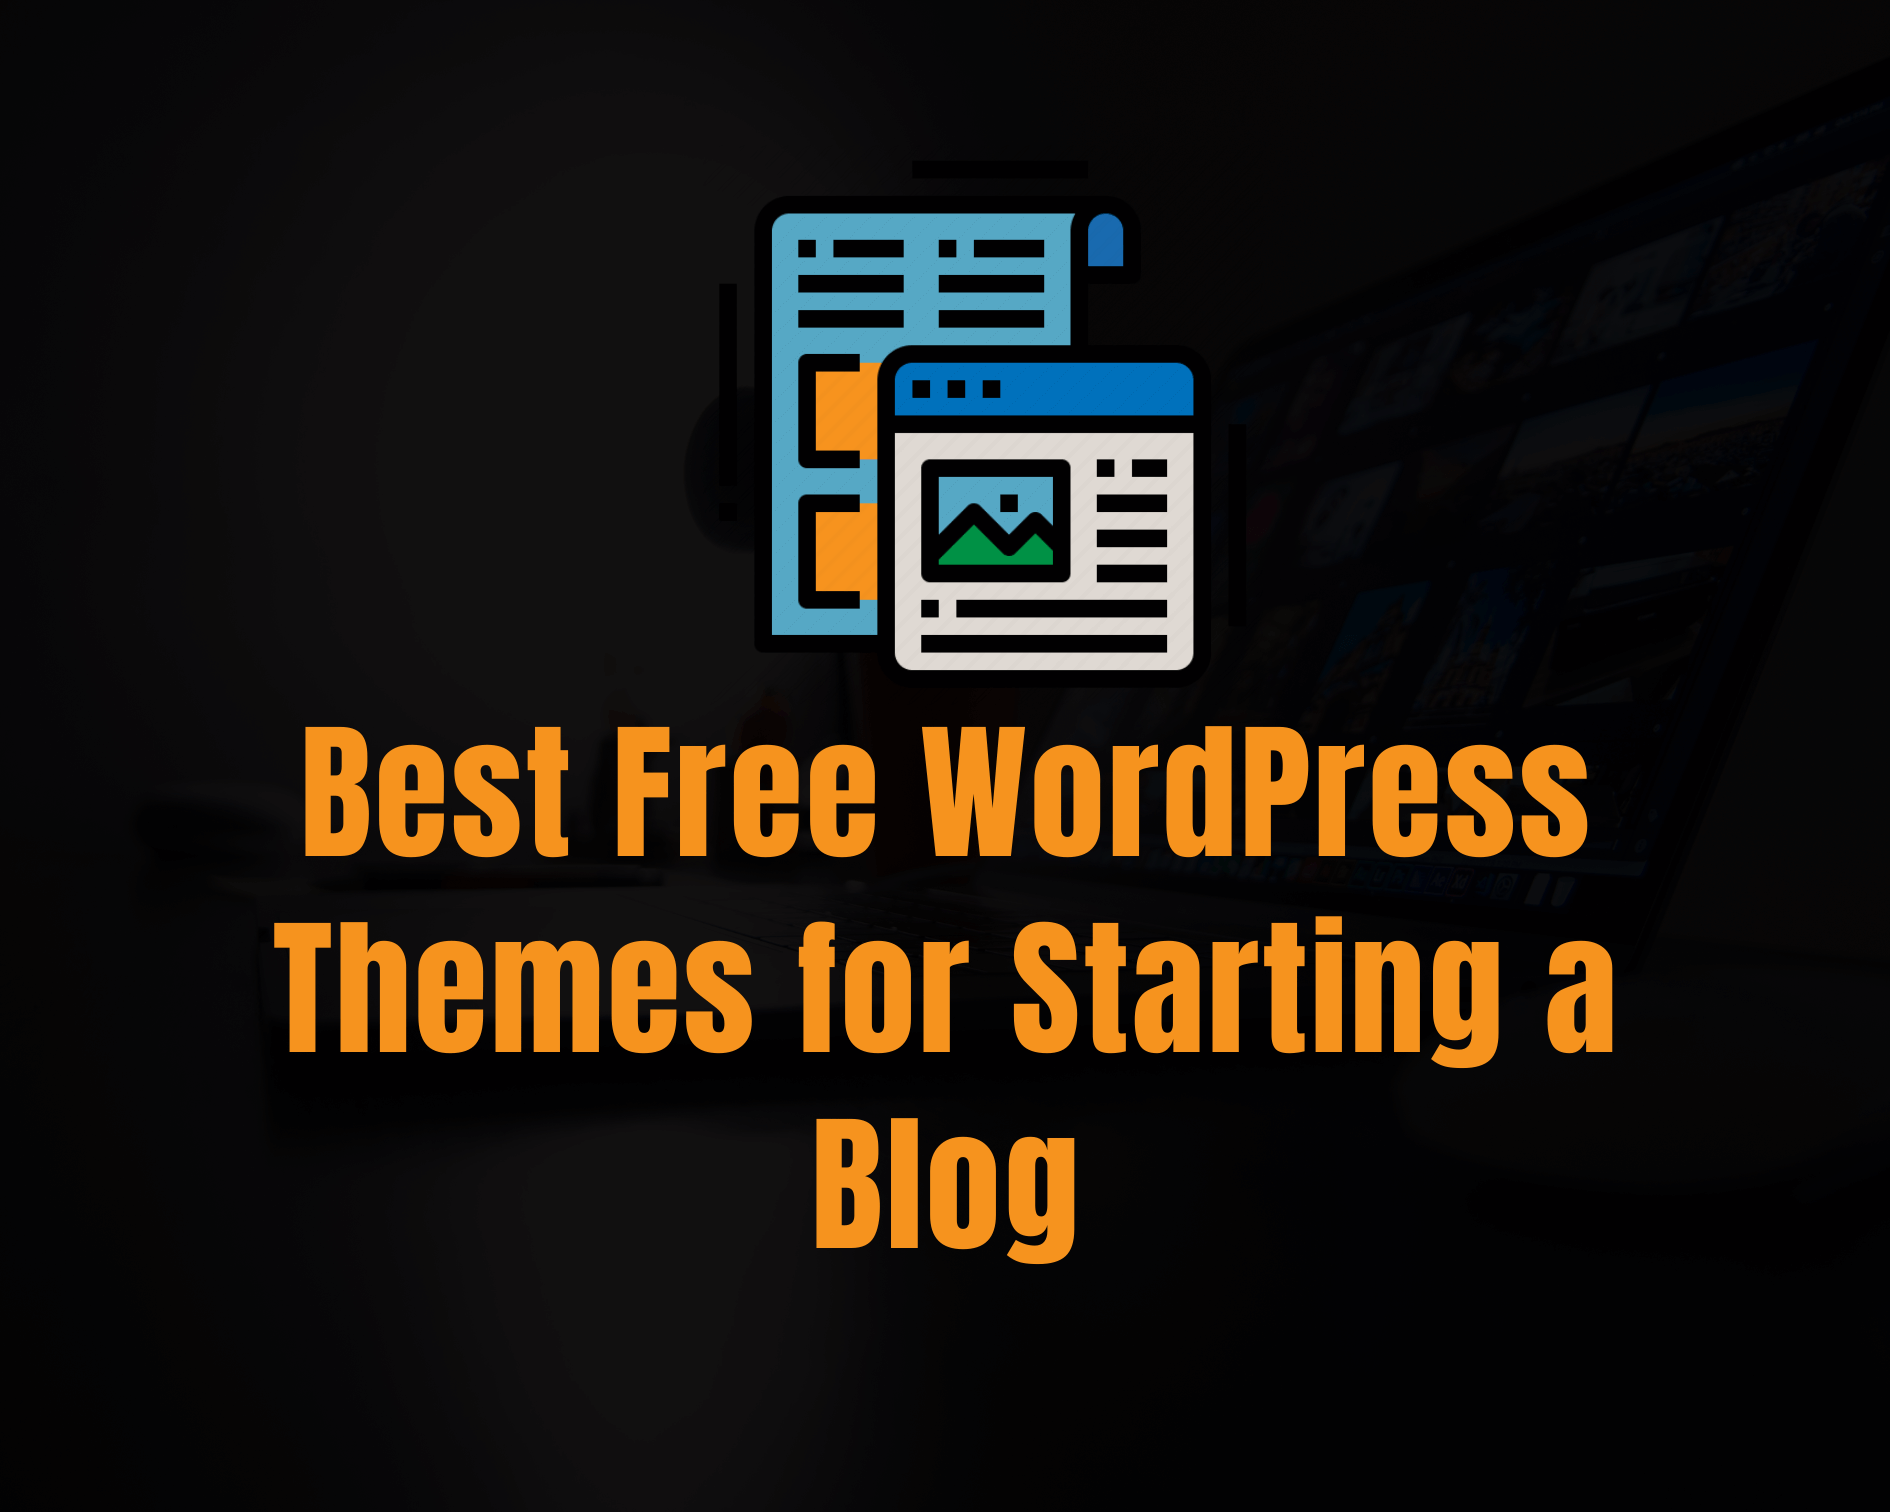 10 Best Free WordPress Themes for Start a Blog